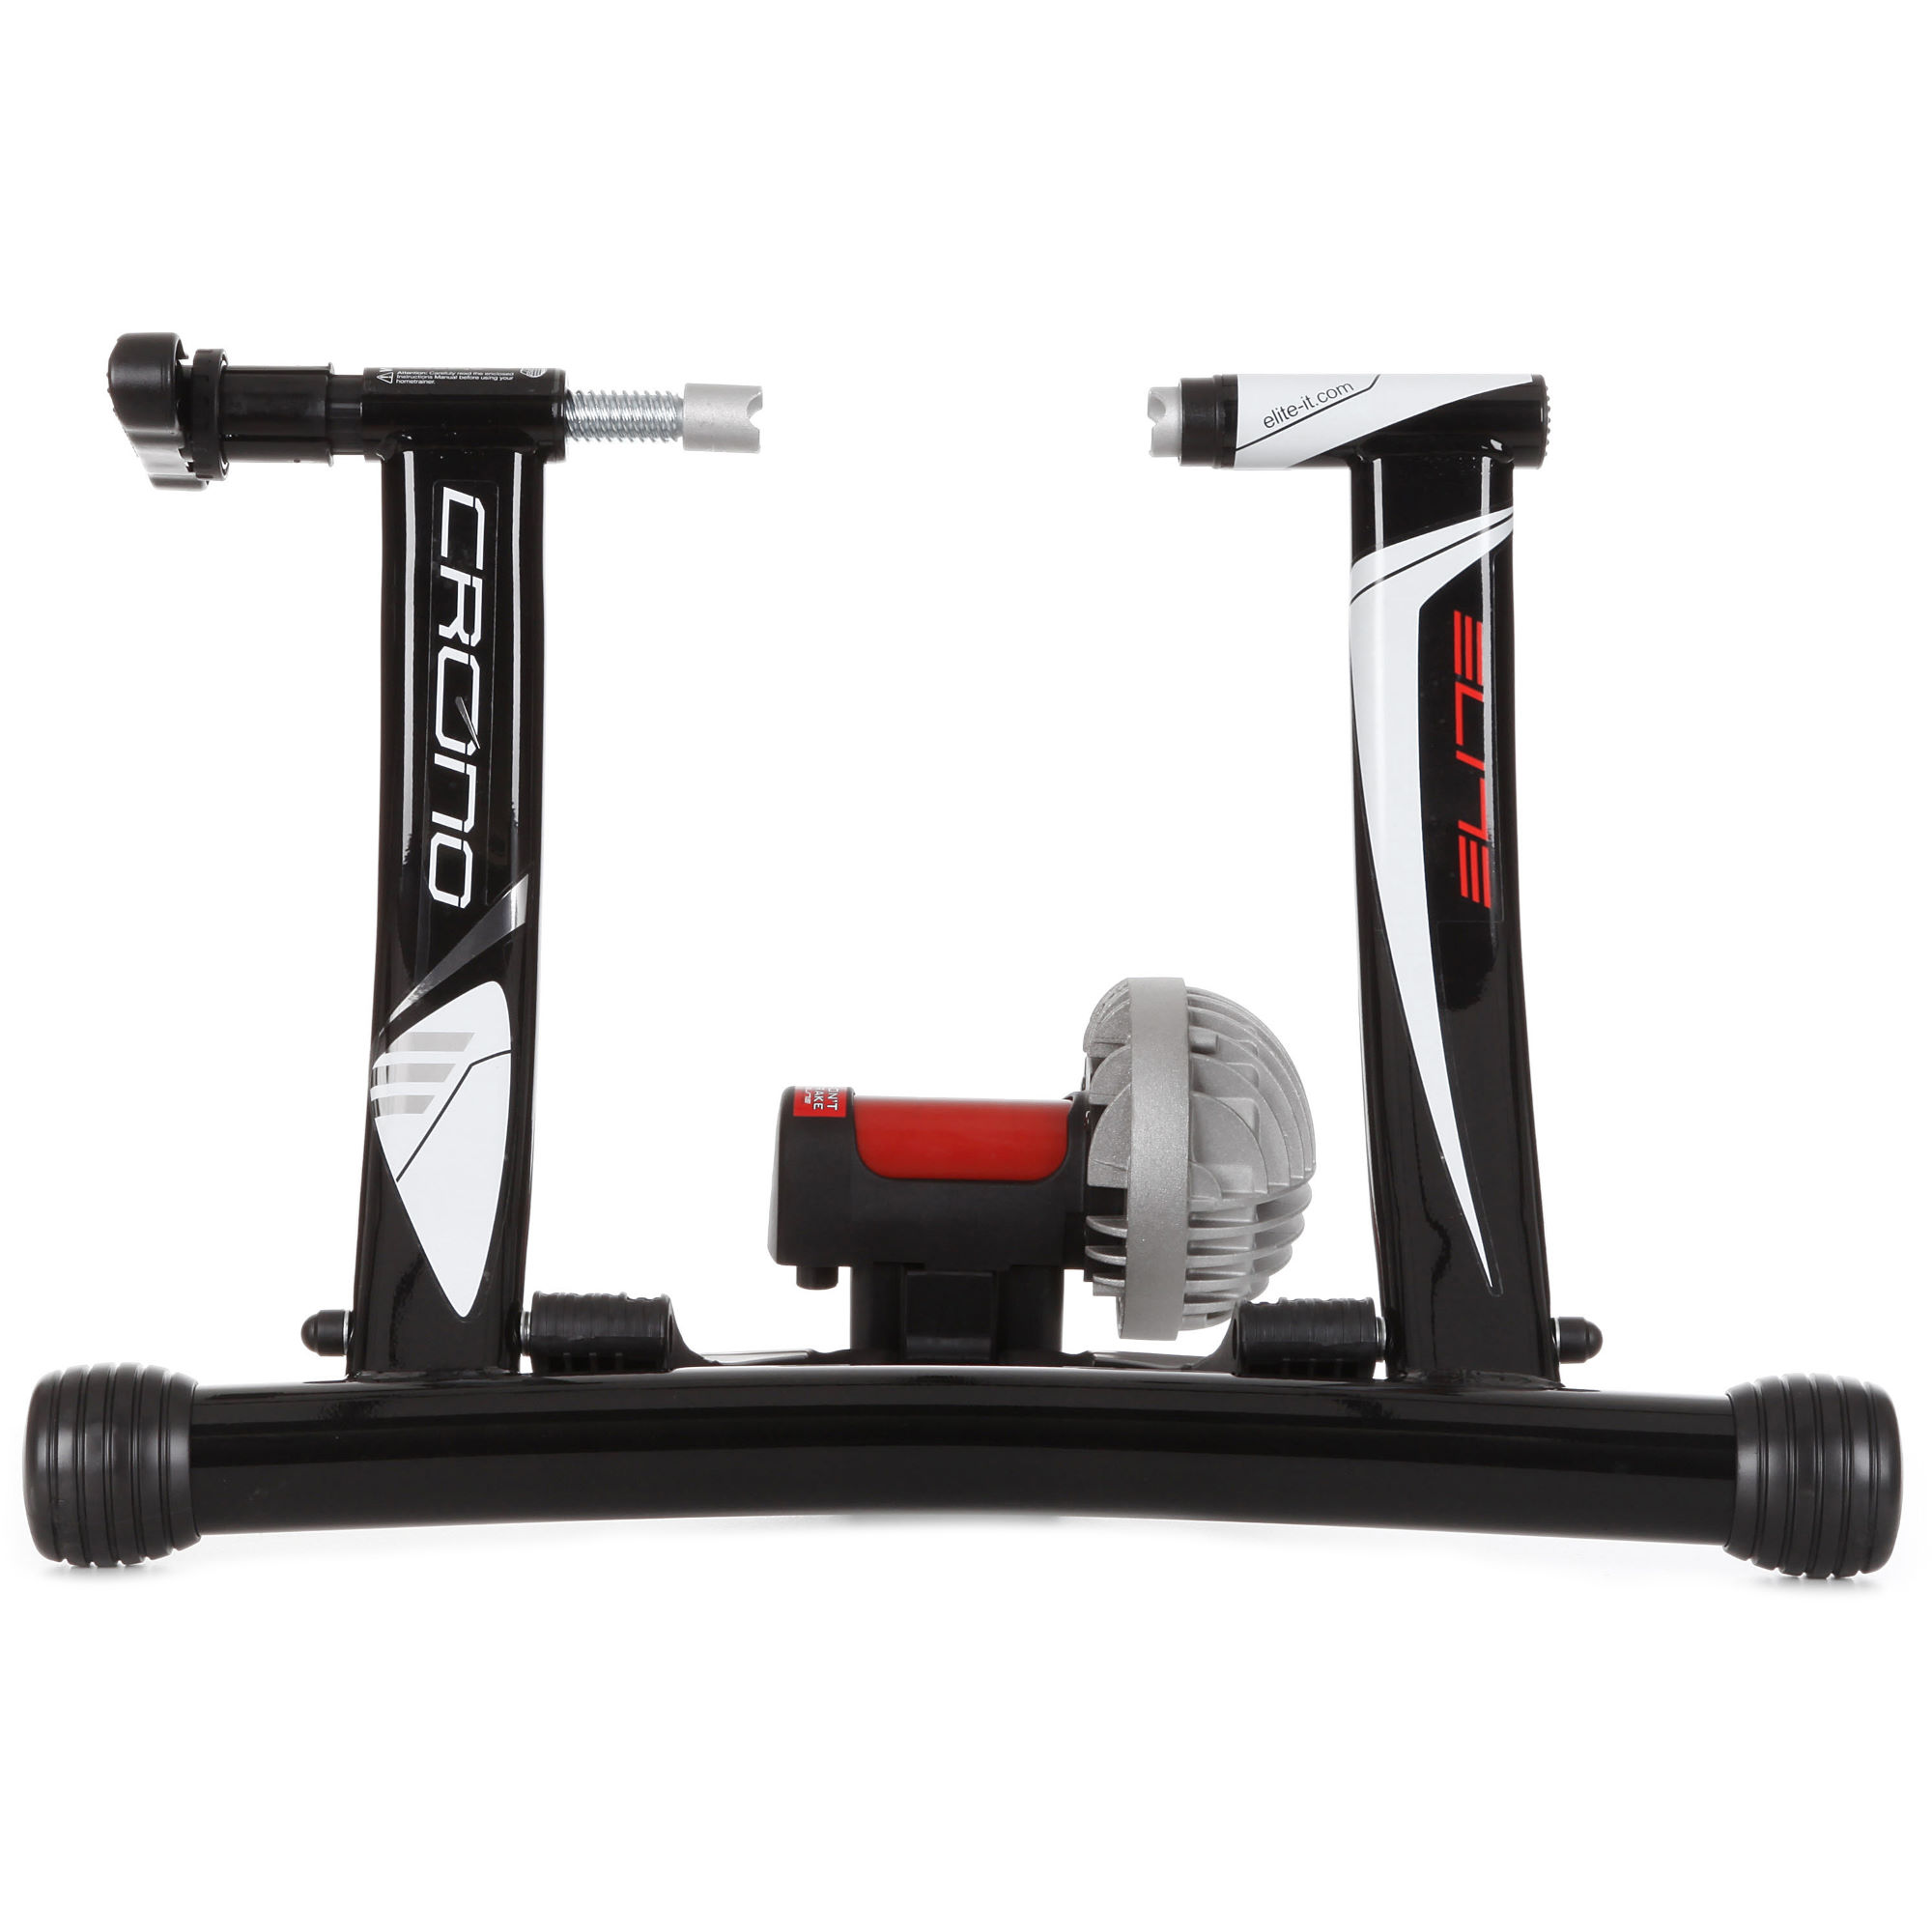 elite crono fluid elastogel turbo trainer instructions